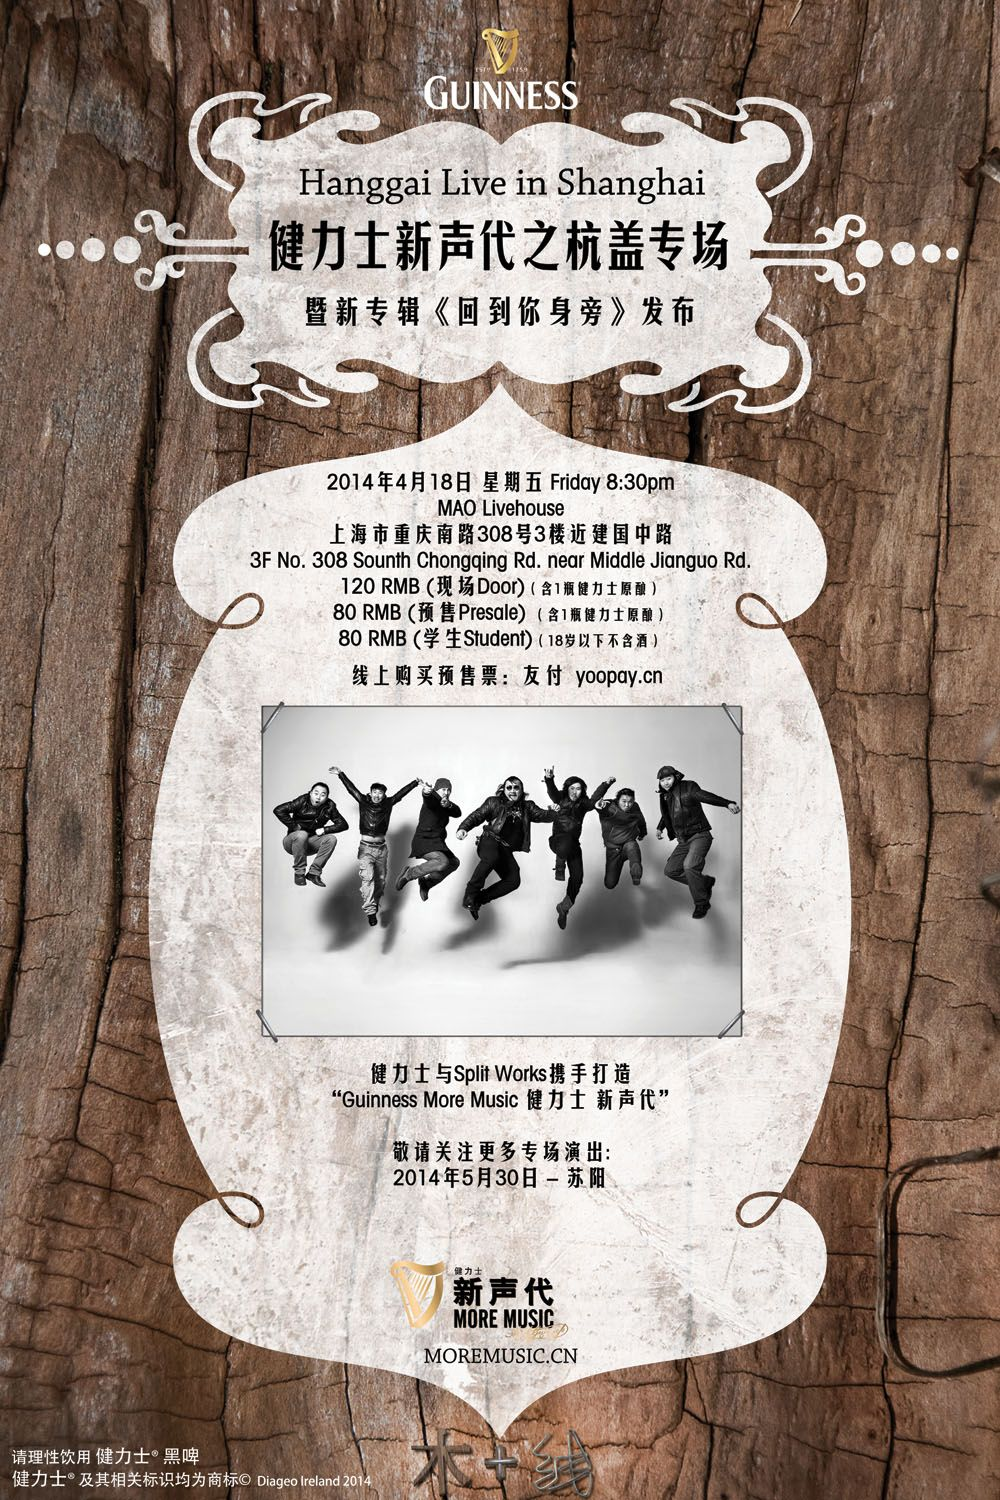 One of the most celebrated Mongolian acts in China are releasing a new album! They're pretty well known amongst the expat crowd in BJ/SH but if you haven't heard of them, they blend rock with authentic Mongolian music.   7 guys play in the band in total. Western instrumentation, with horse-head fiddle and throat singing - plus they usually wear their Mongolian garb. It's quite the spectacle and something to share with the fam at home. @MAOLivehouse